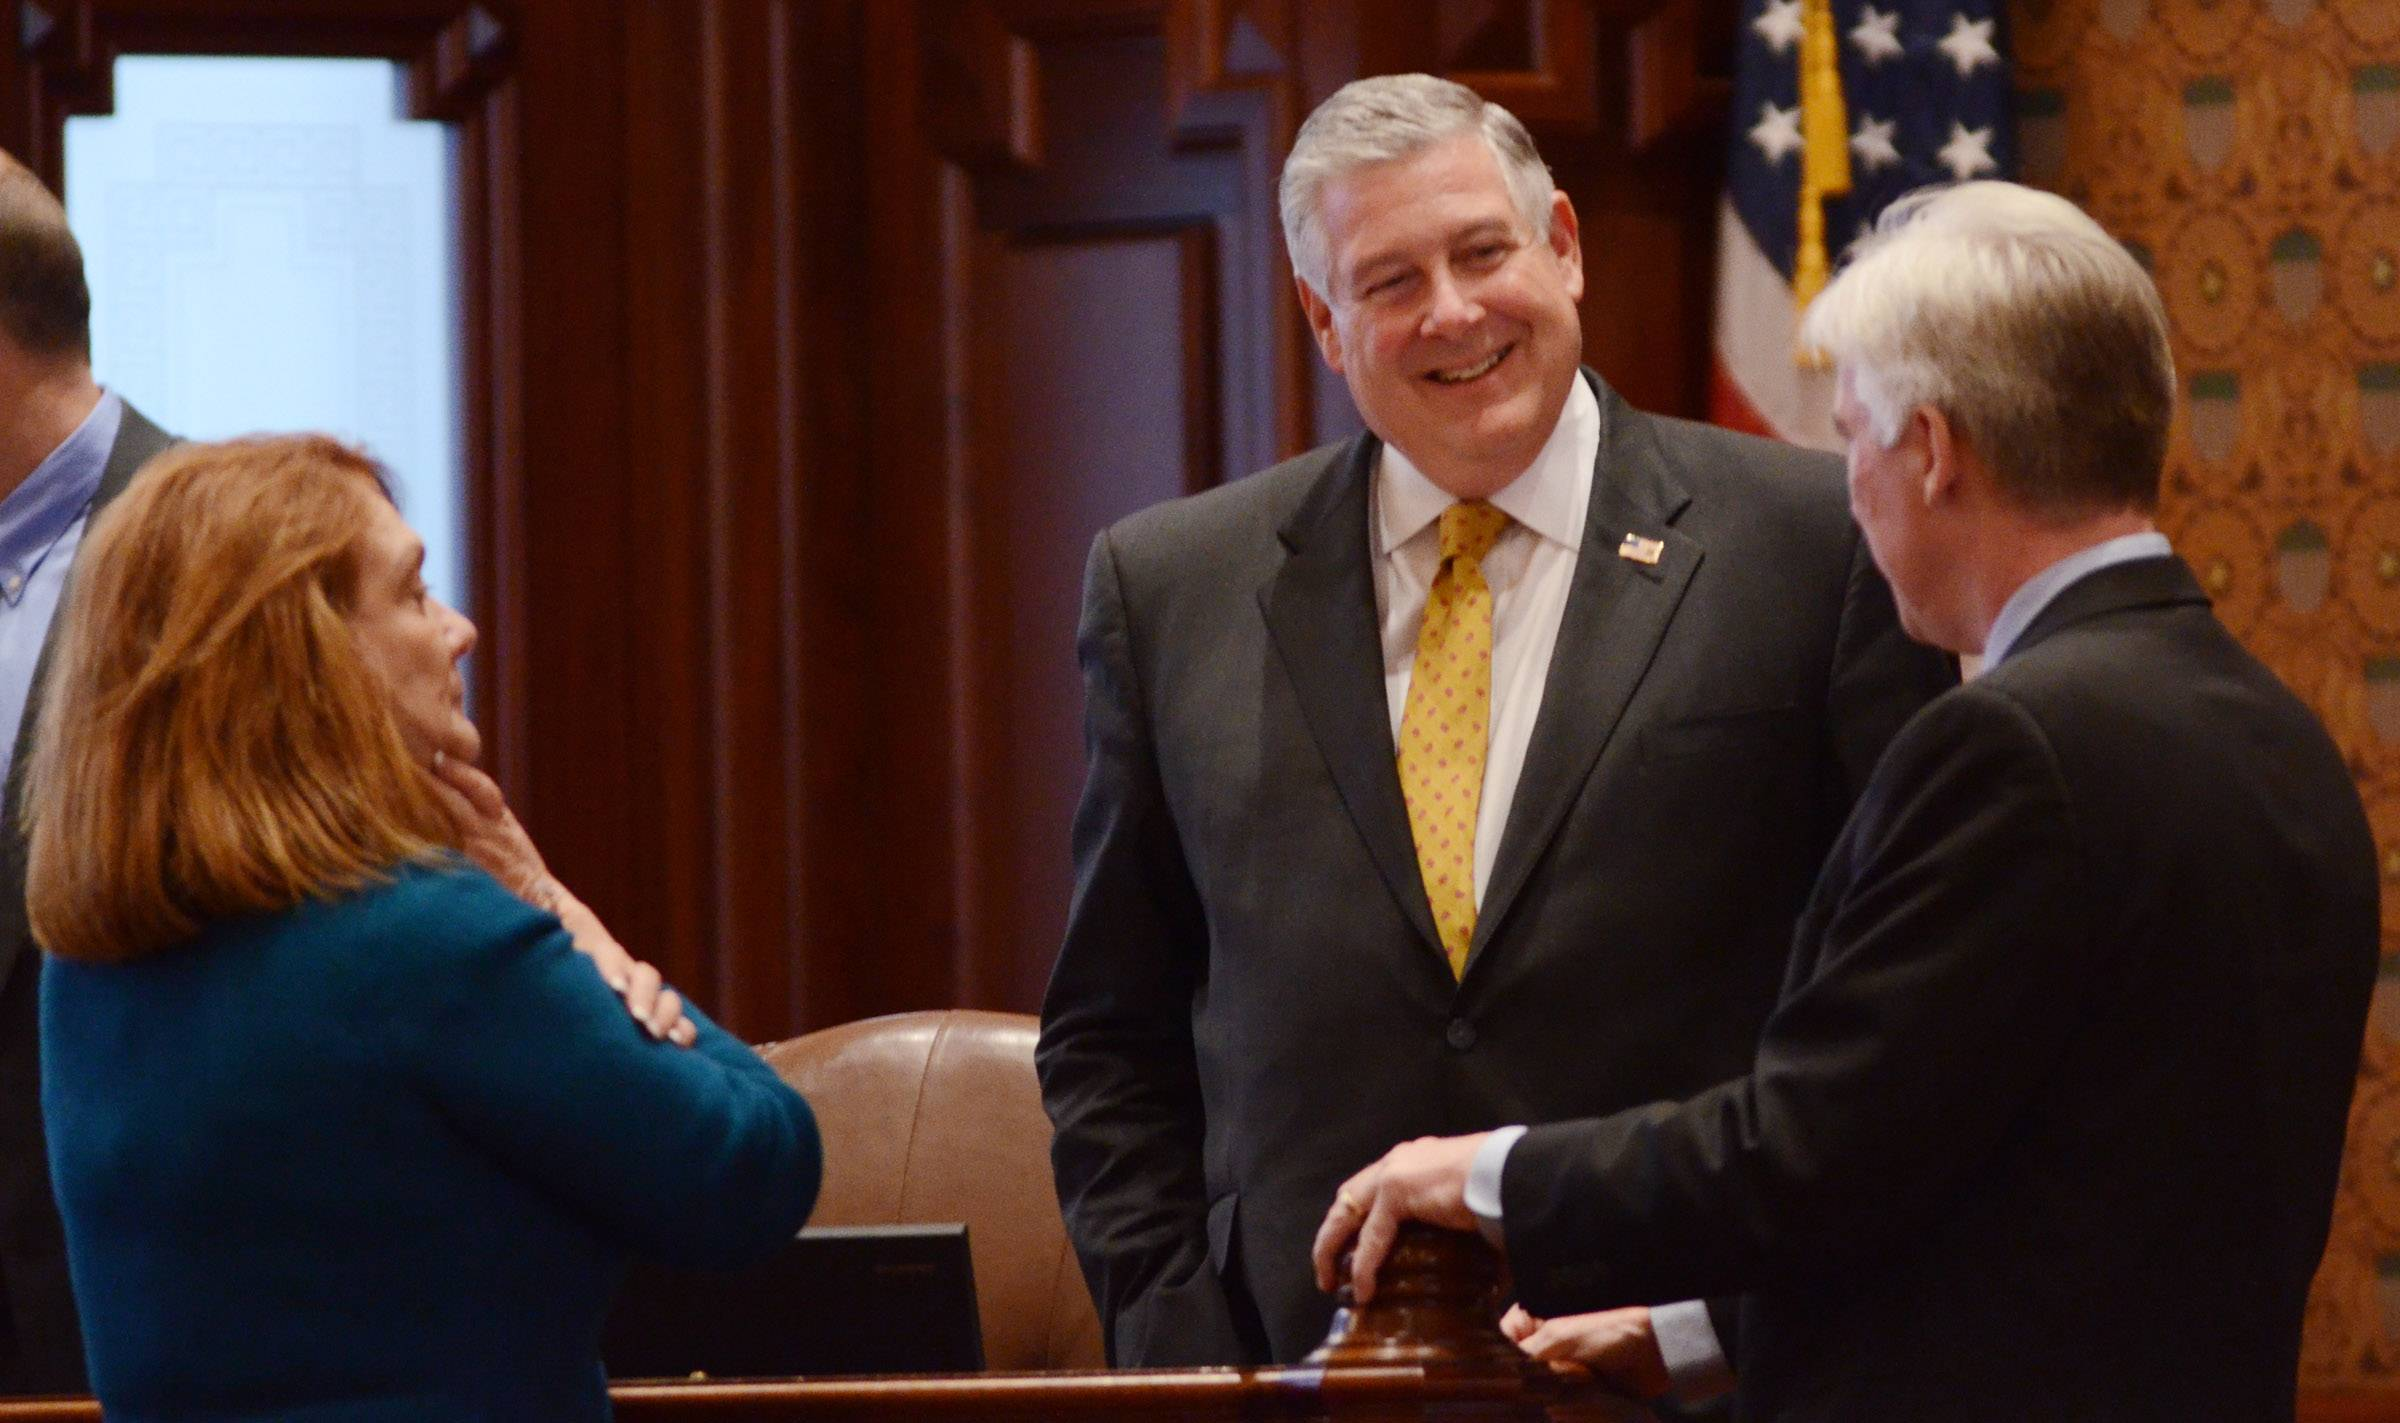 State Sen. Kirk Dillard talks with state Sens. Pam Althoff, a McHenry Republican, and Michael Connelly, a Lisle Republican, on the floor of the Illinois Senate.